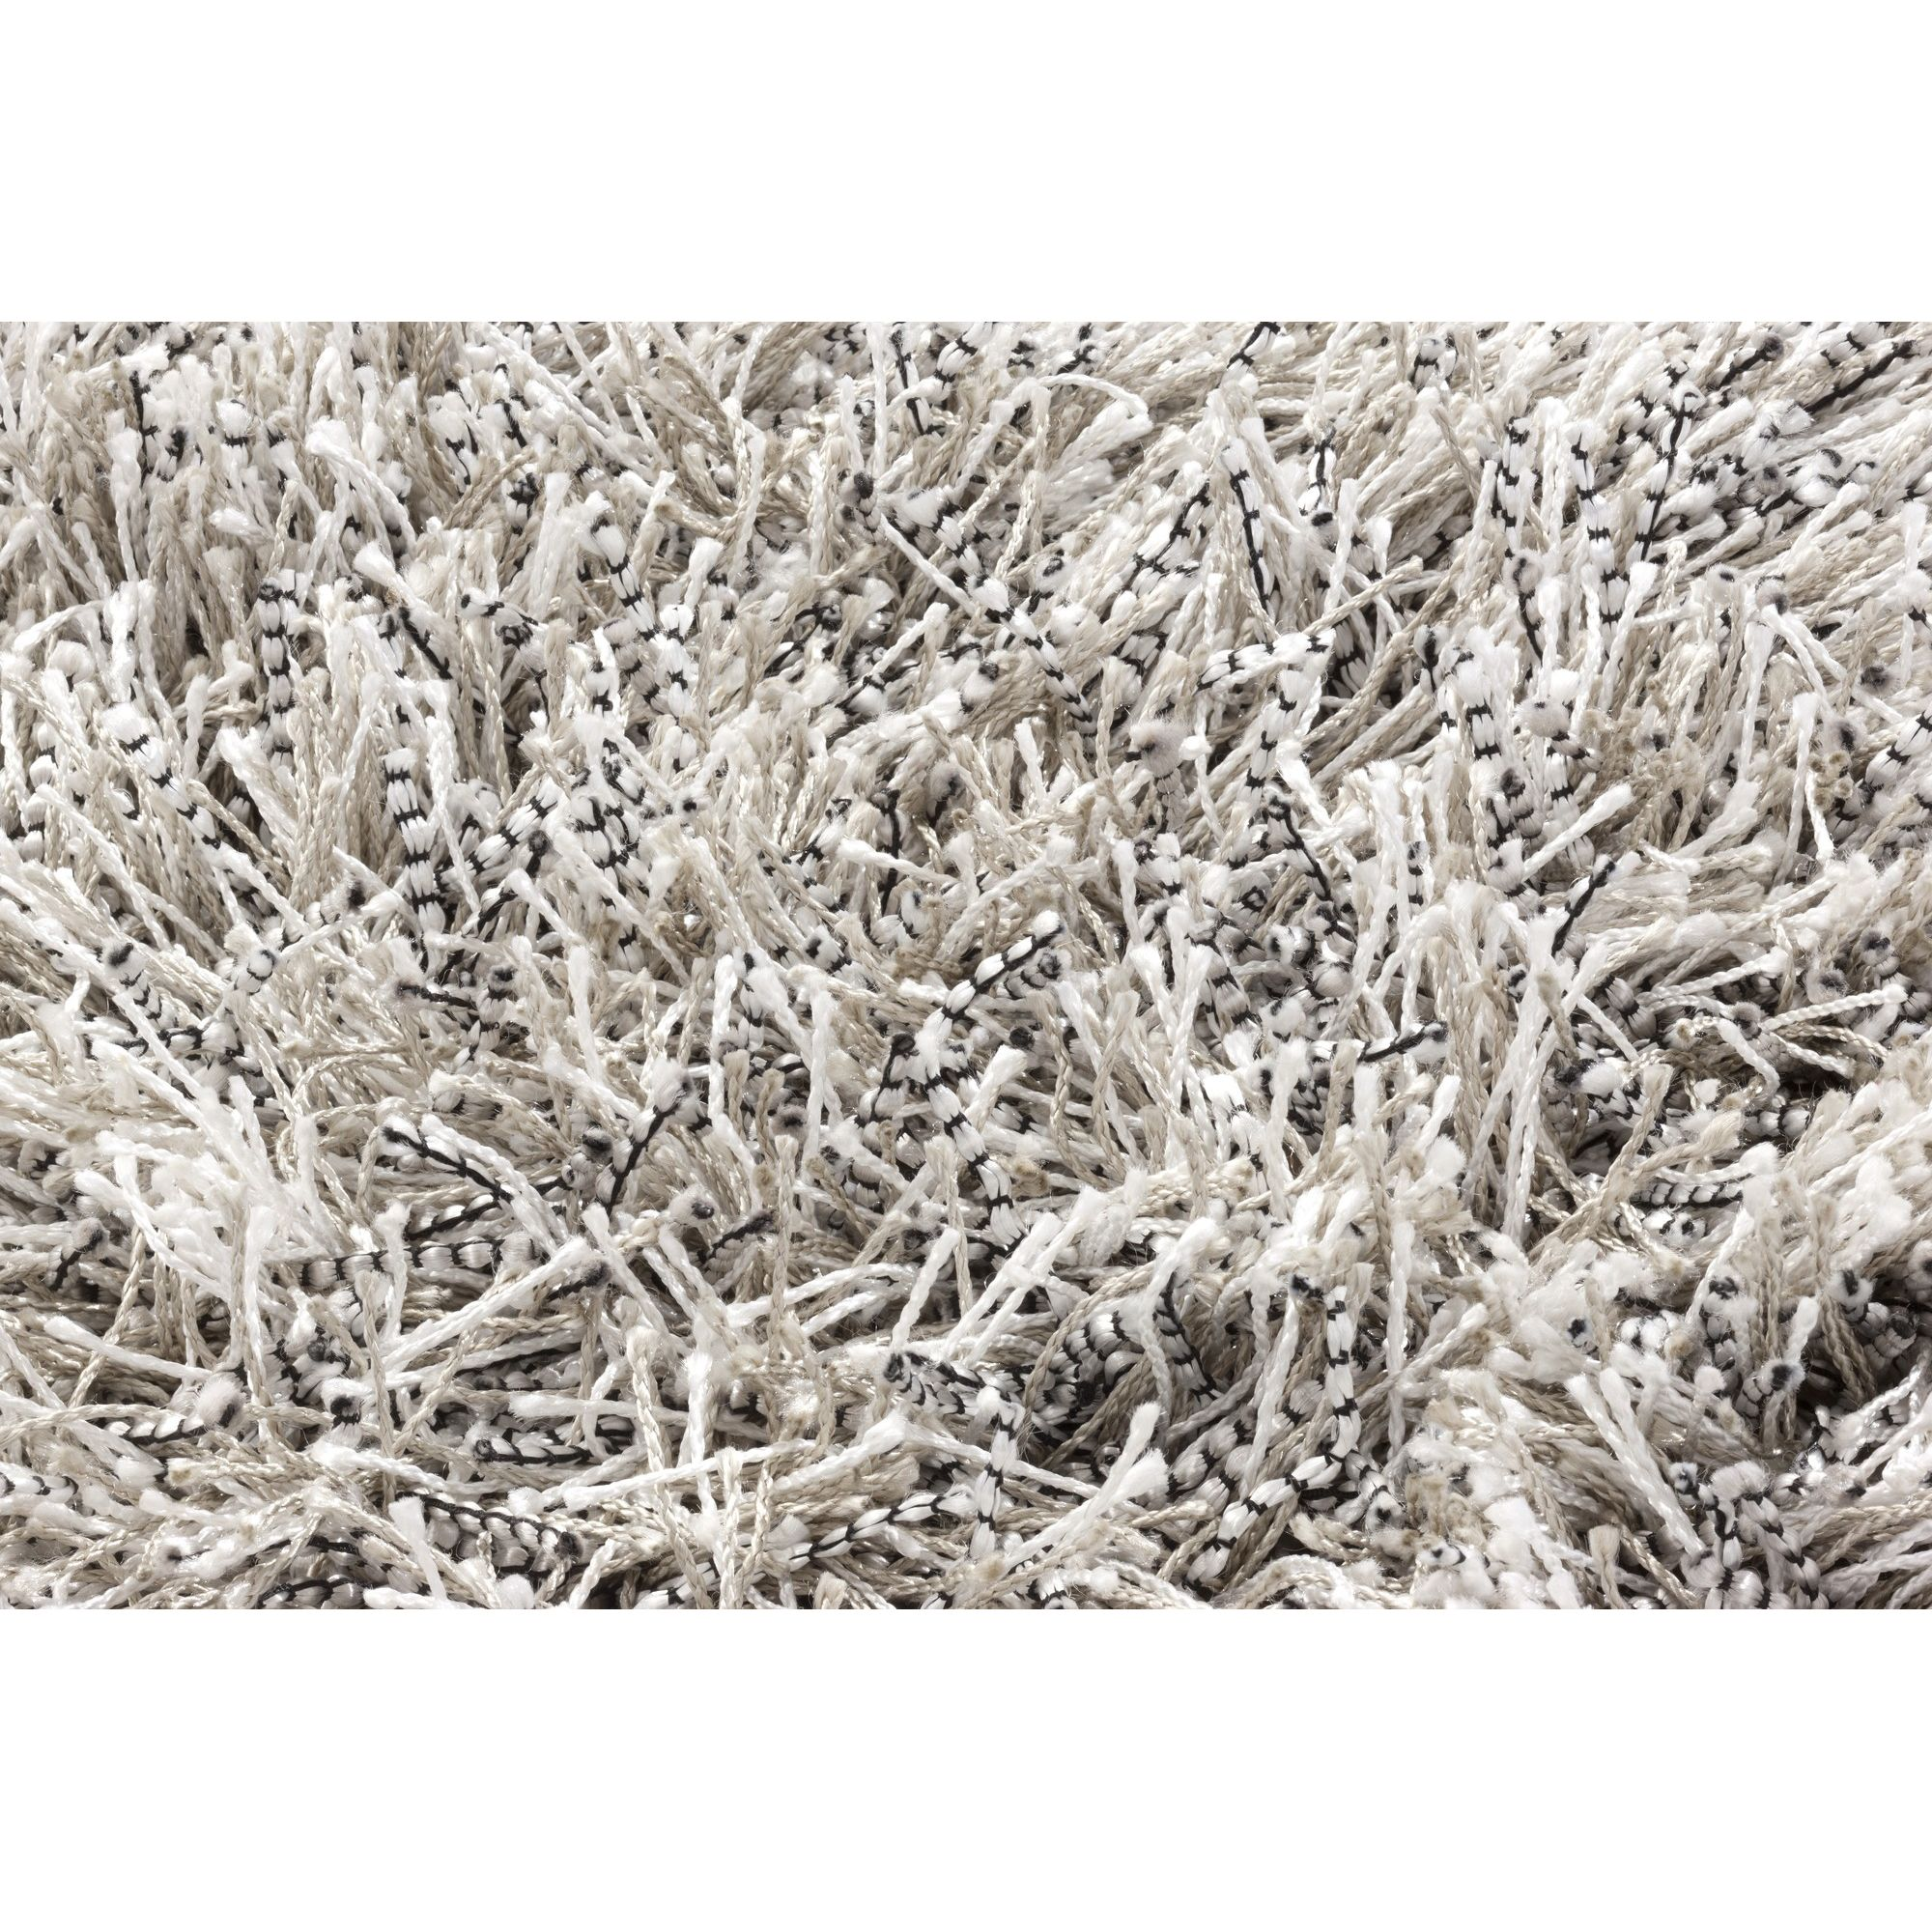 Linie Design Sprinkle Silver Shag Rug - 200cm x 140cm at Tescos Direct